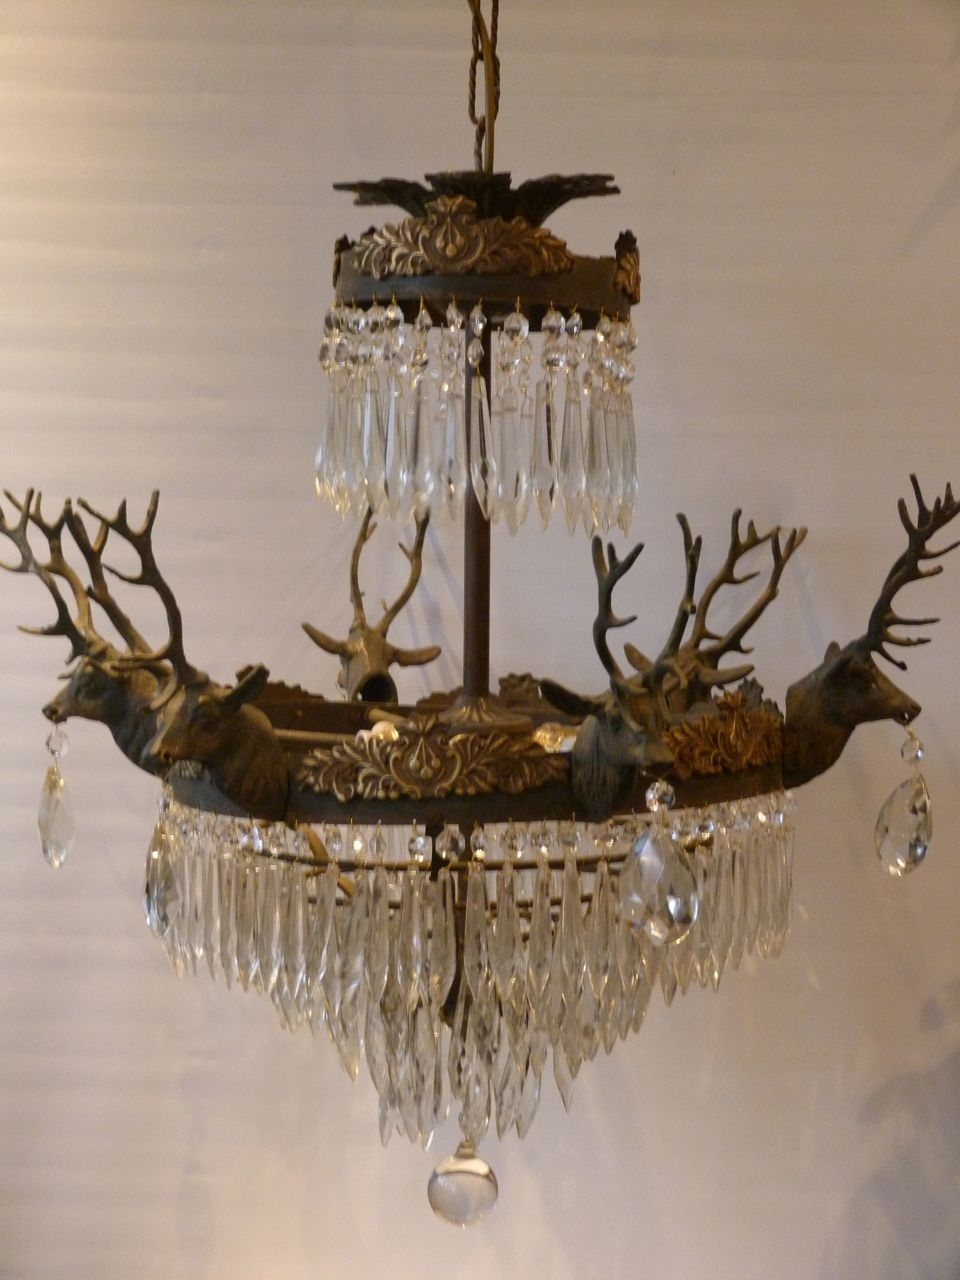 6 Arm Brass Stag Head Chandelier The Vintage Chandelier Company Inside Vintage Chandeliers (Image 3 of 15)